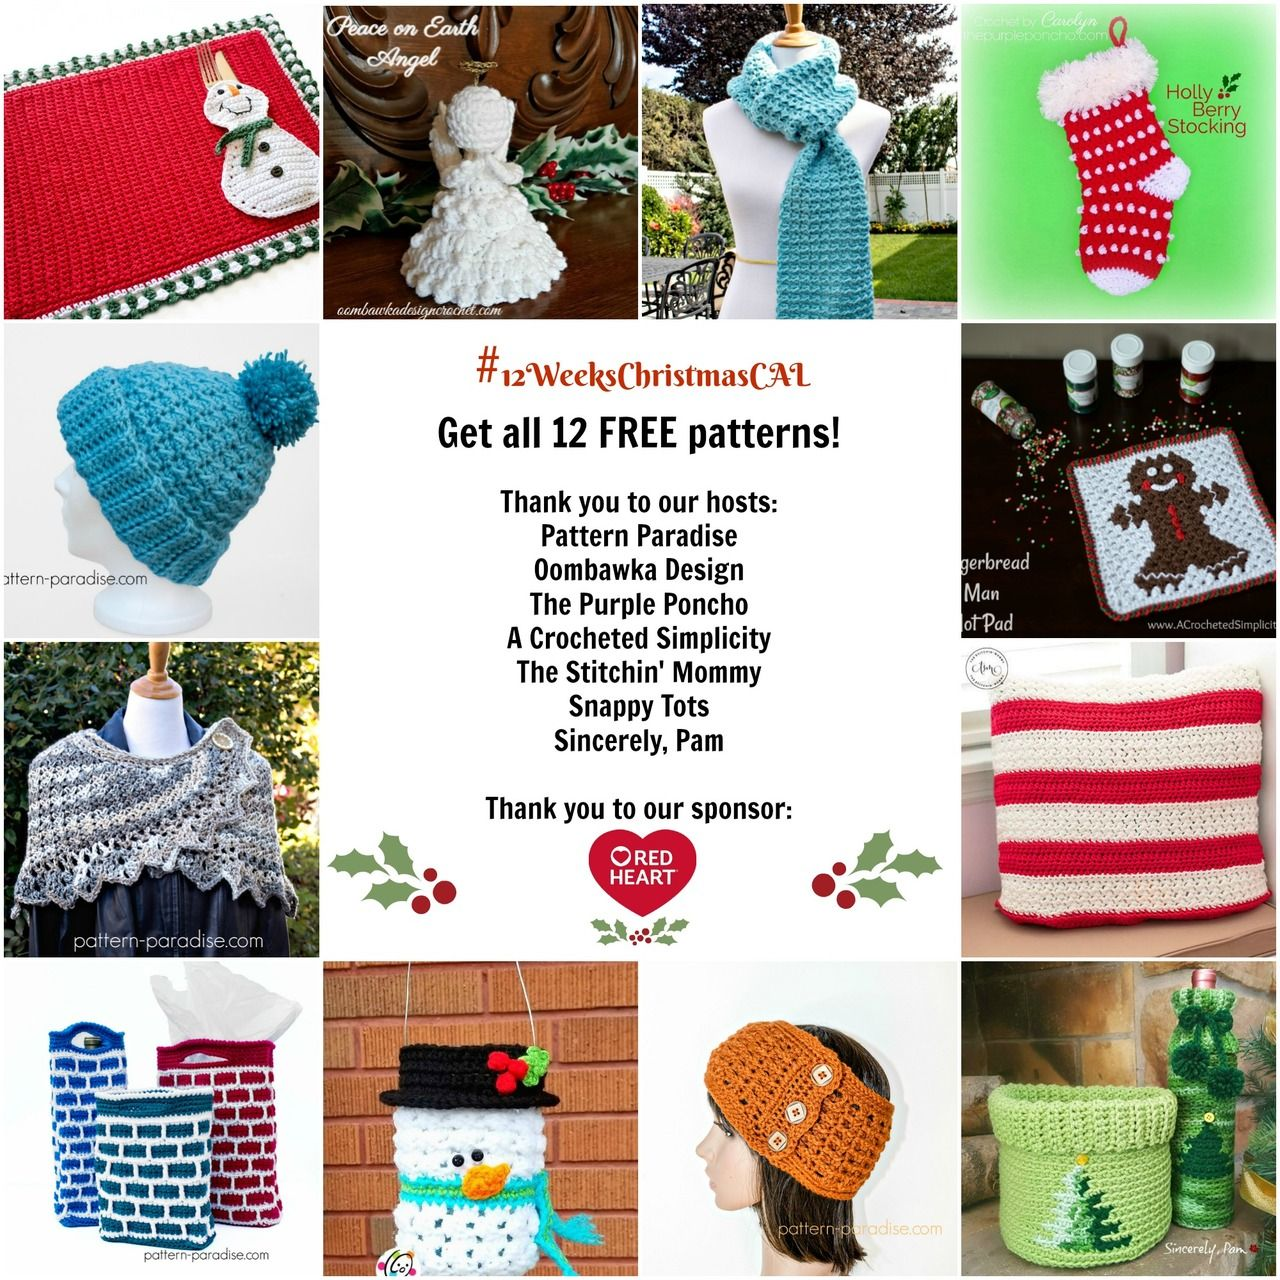 12WeeksChristmasCAL - 12 FREE Patterns & Giveaway! | Pattern ...